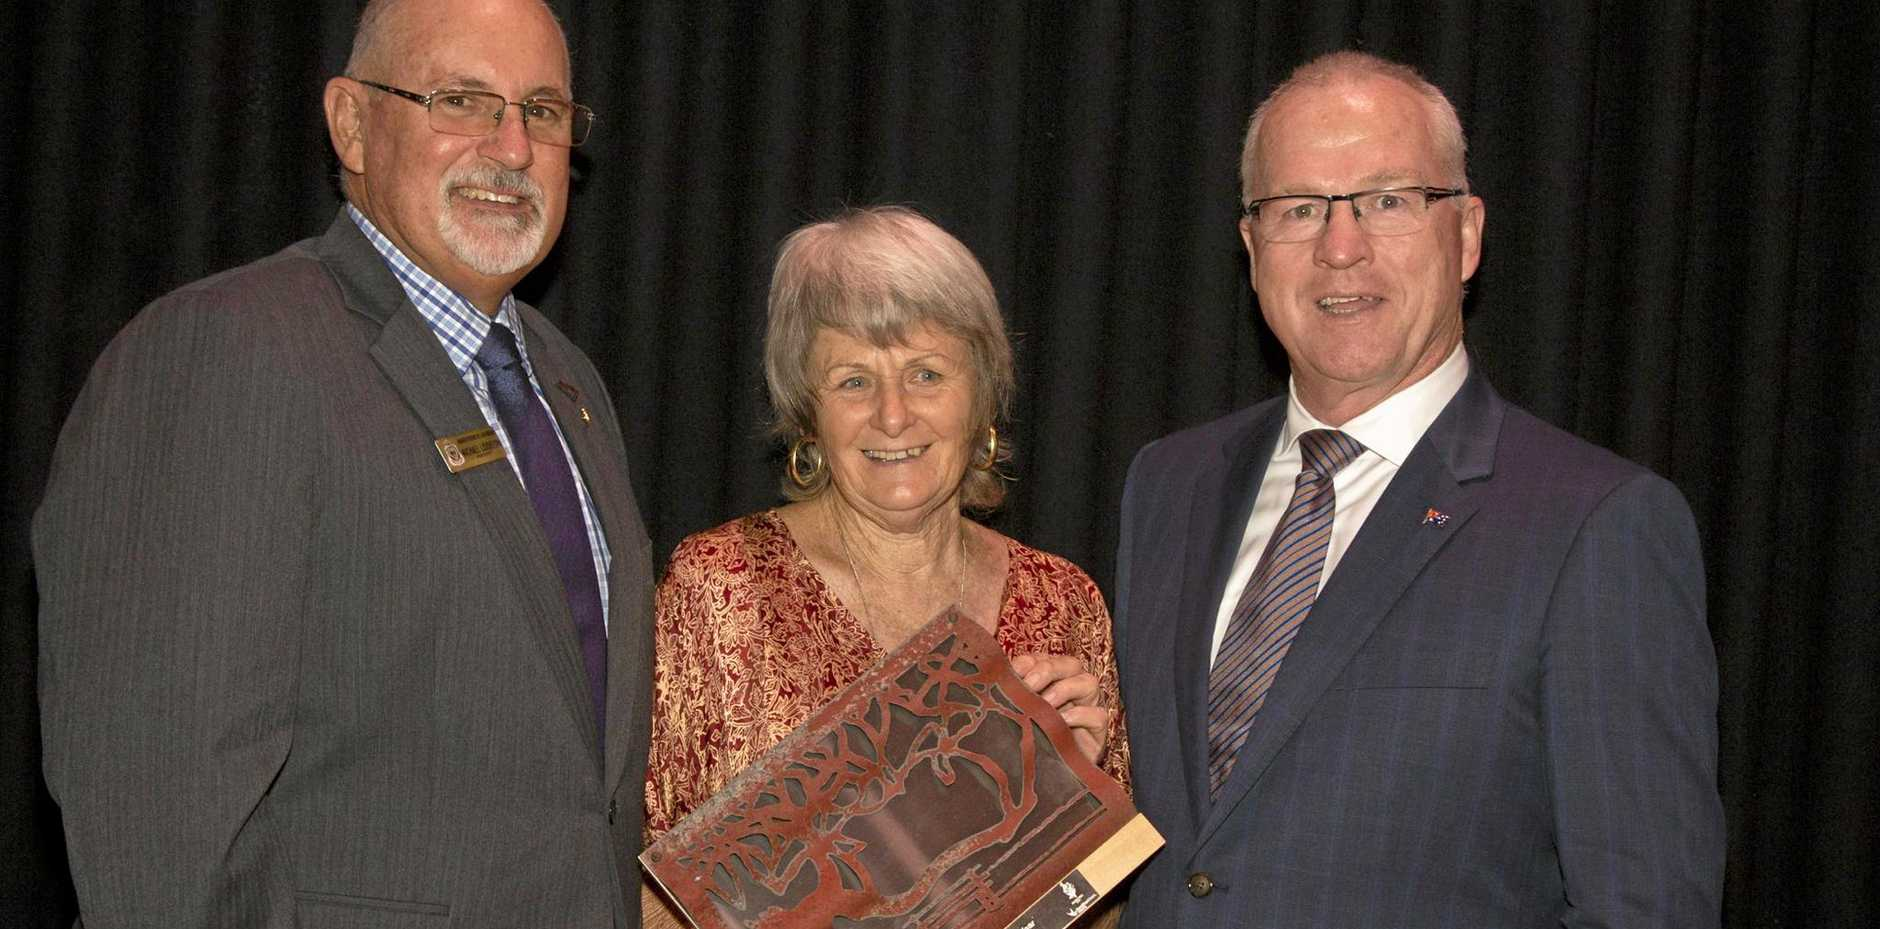 Senior Citizen for 2016 Anne Wensley with Michael Liddelow, president of Maroochy RSL (left) and Mayor Jamieson.